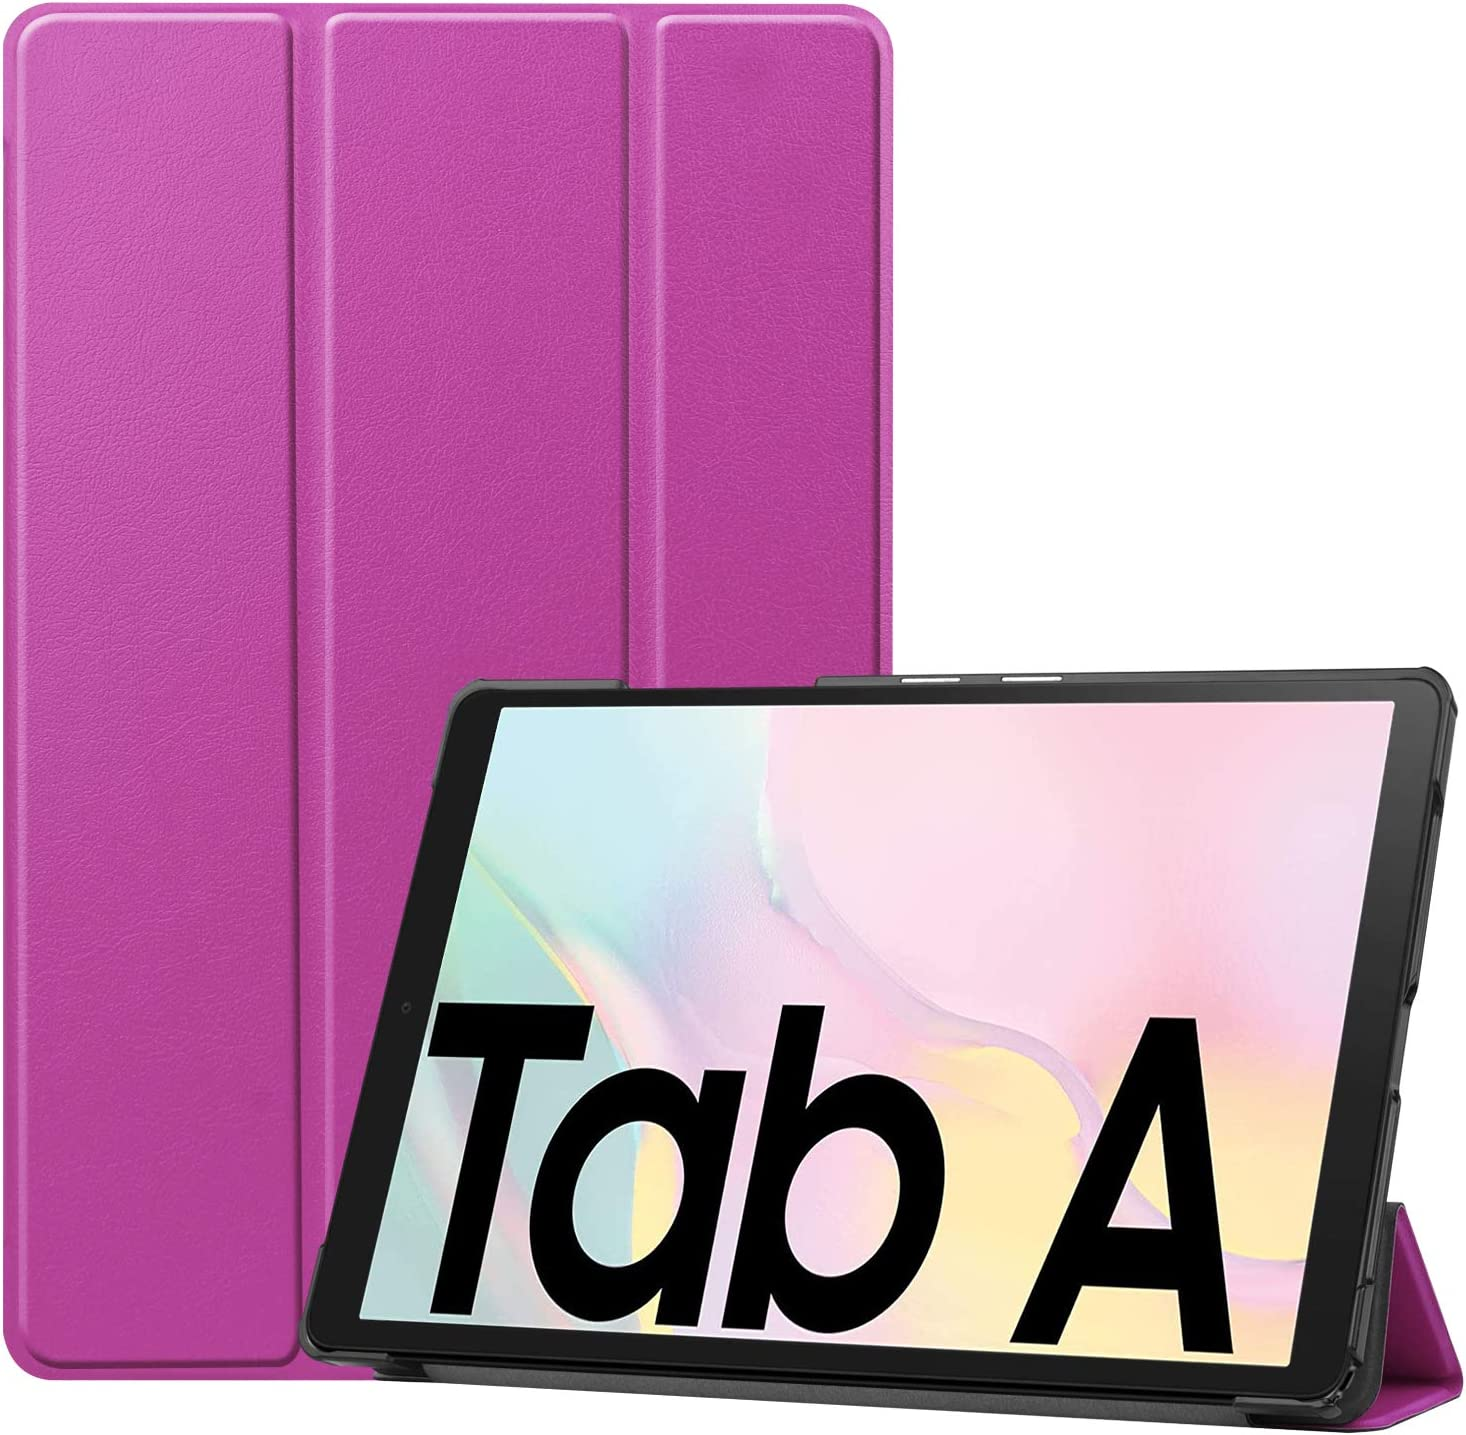 GWYLH At the price Vegan Leather Case for Galaxy Light A7 Tab 10.4 2020 free